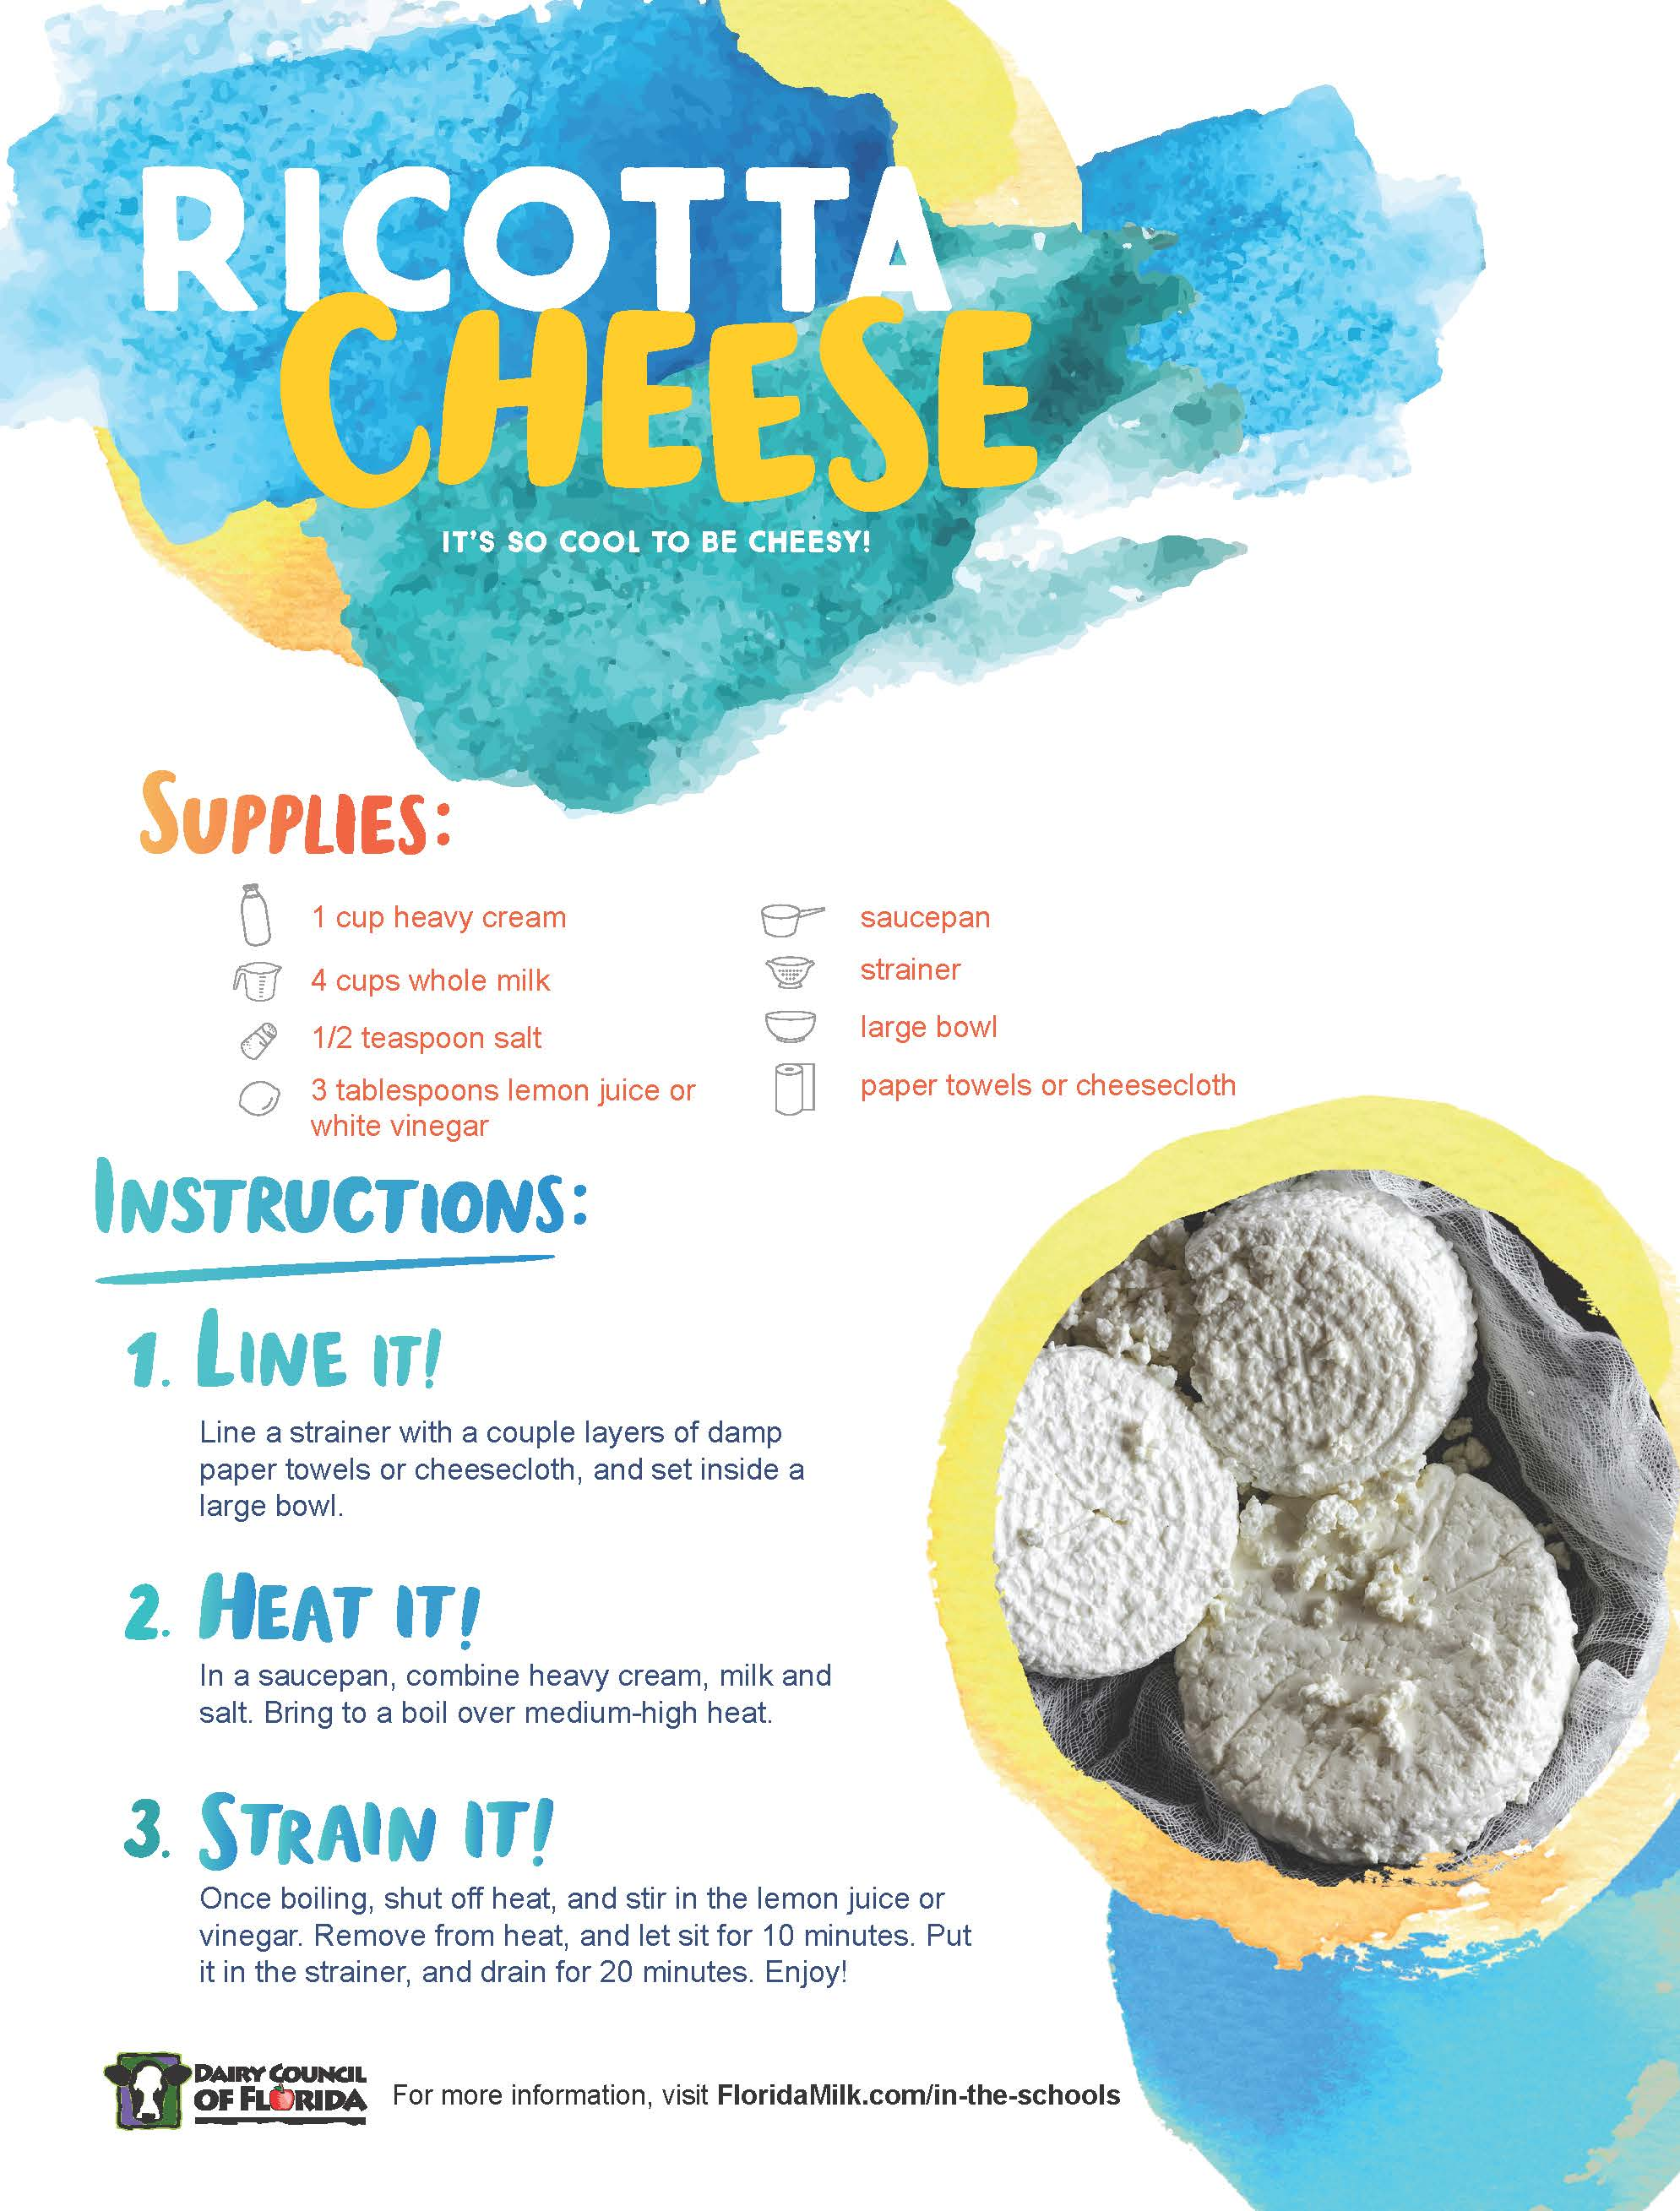 How to Make Ricotta Cheese image